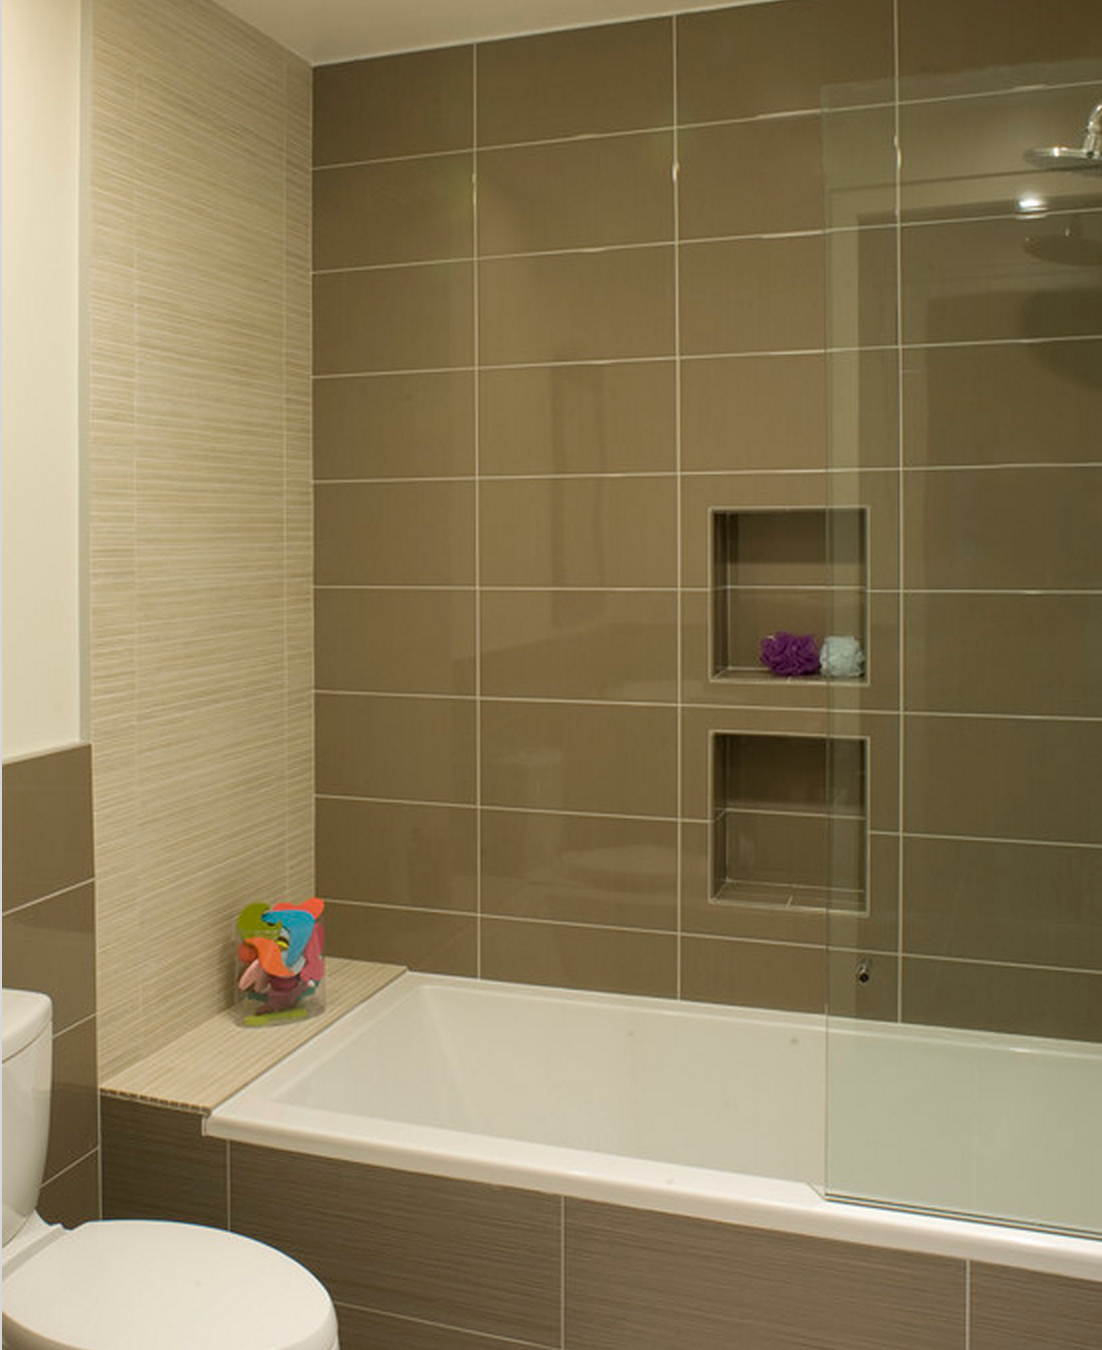 I Like The Kids Bathroom With An Accent Wall (different Tiles) And The Tiles Wrapped Around The